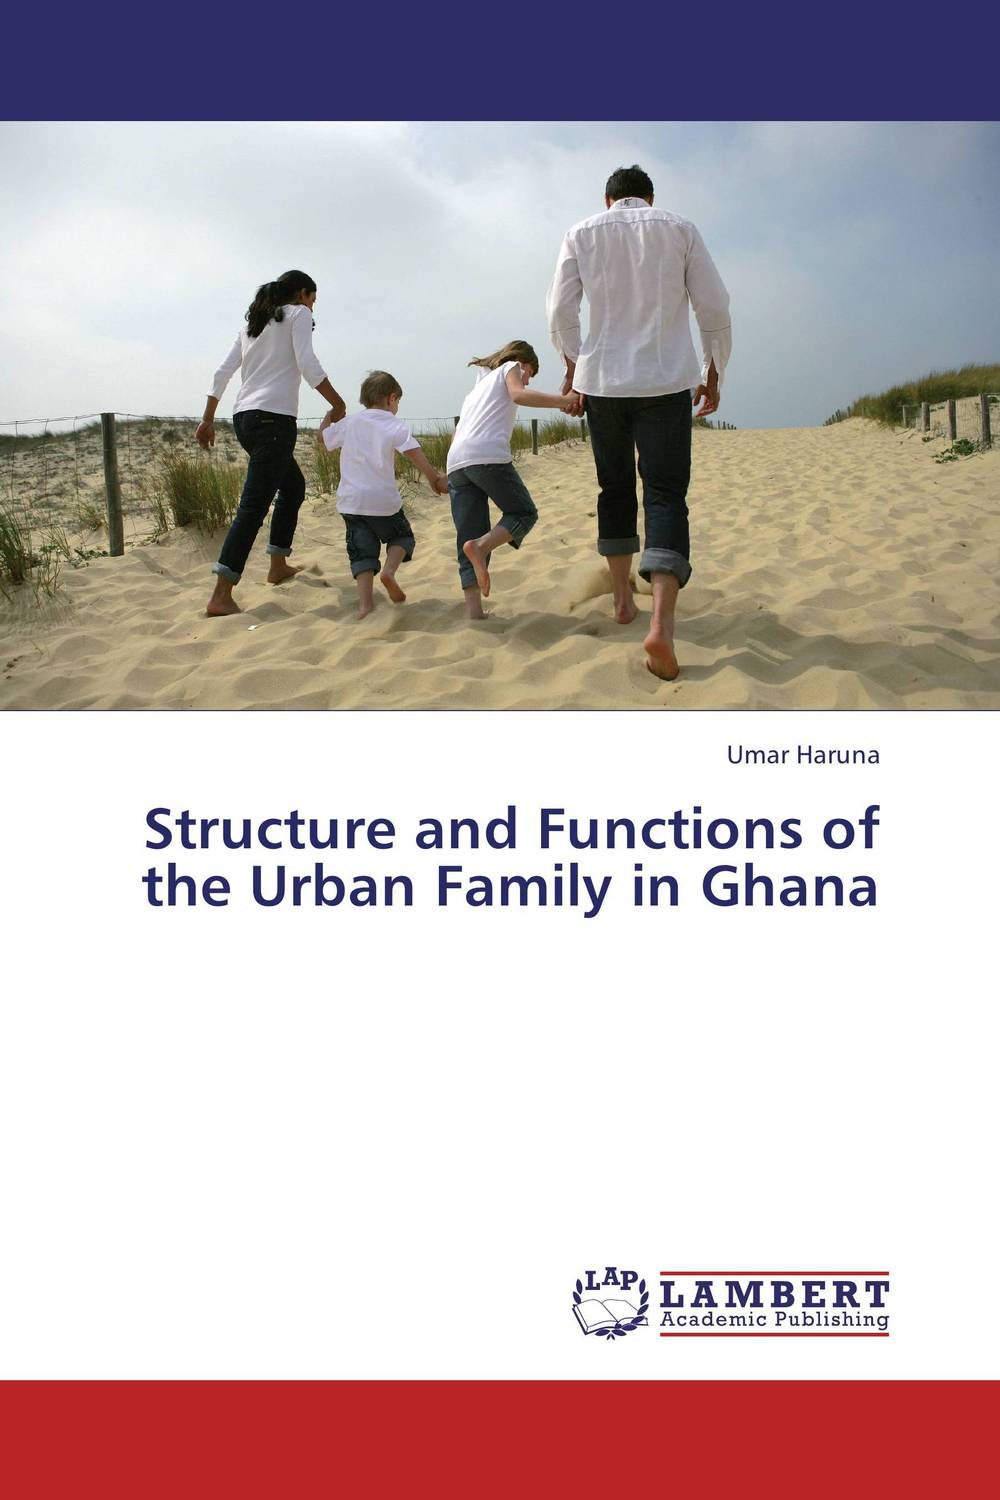 Structure and Functions of the Urban Family in Ghana changing attitude of family towards women in family business